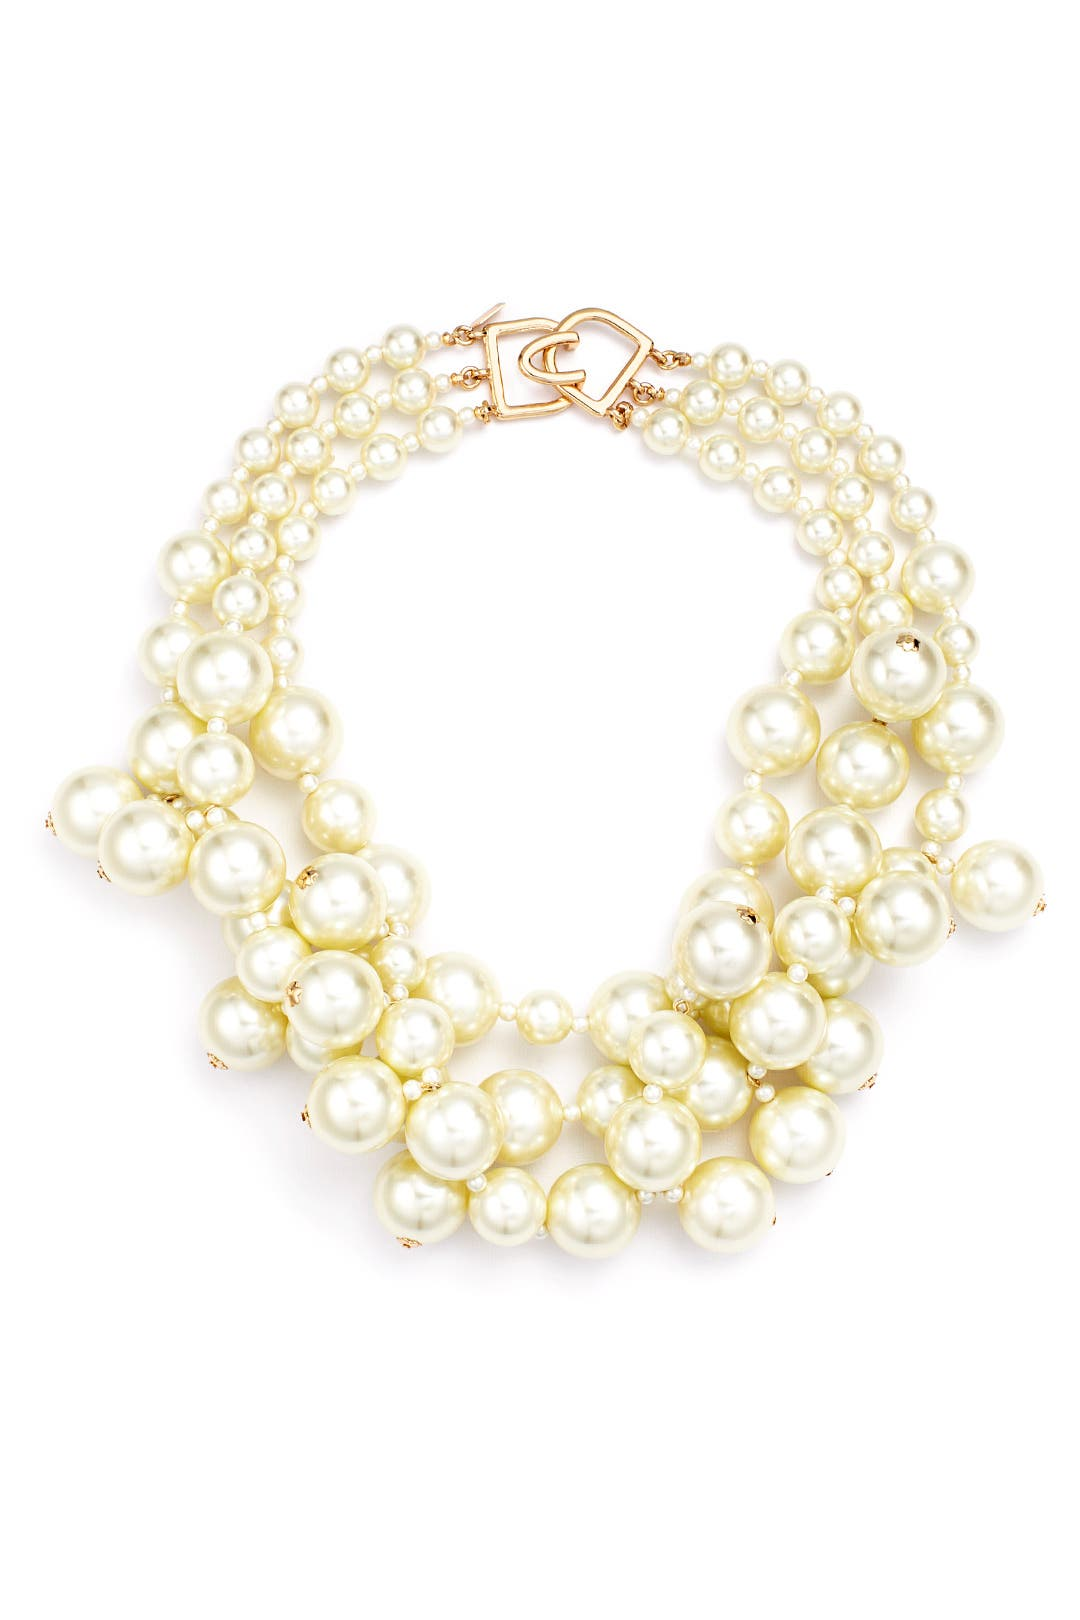 Kenneth Jay Lane Seven-Row Pearly Necklace jnEVb